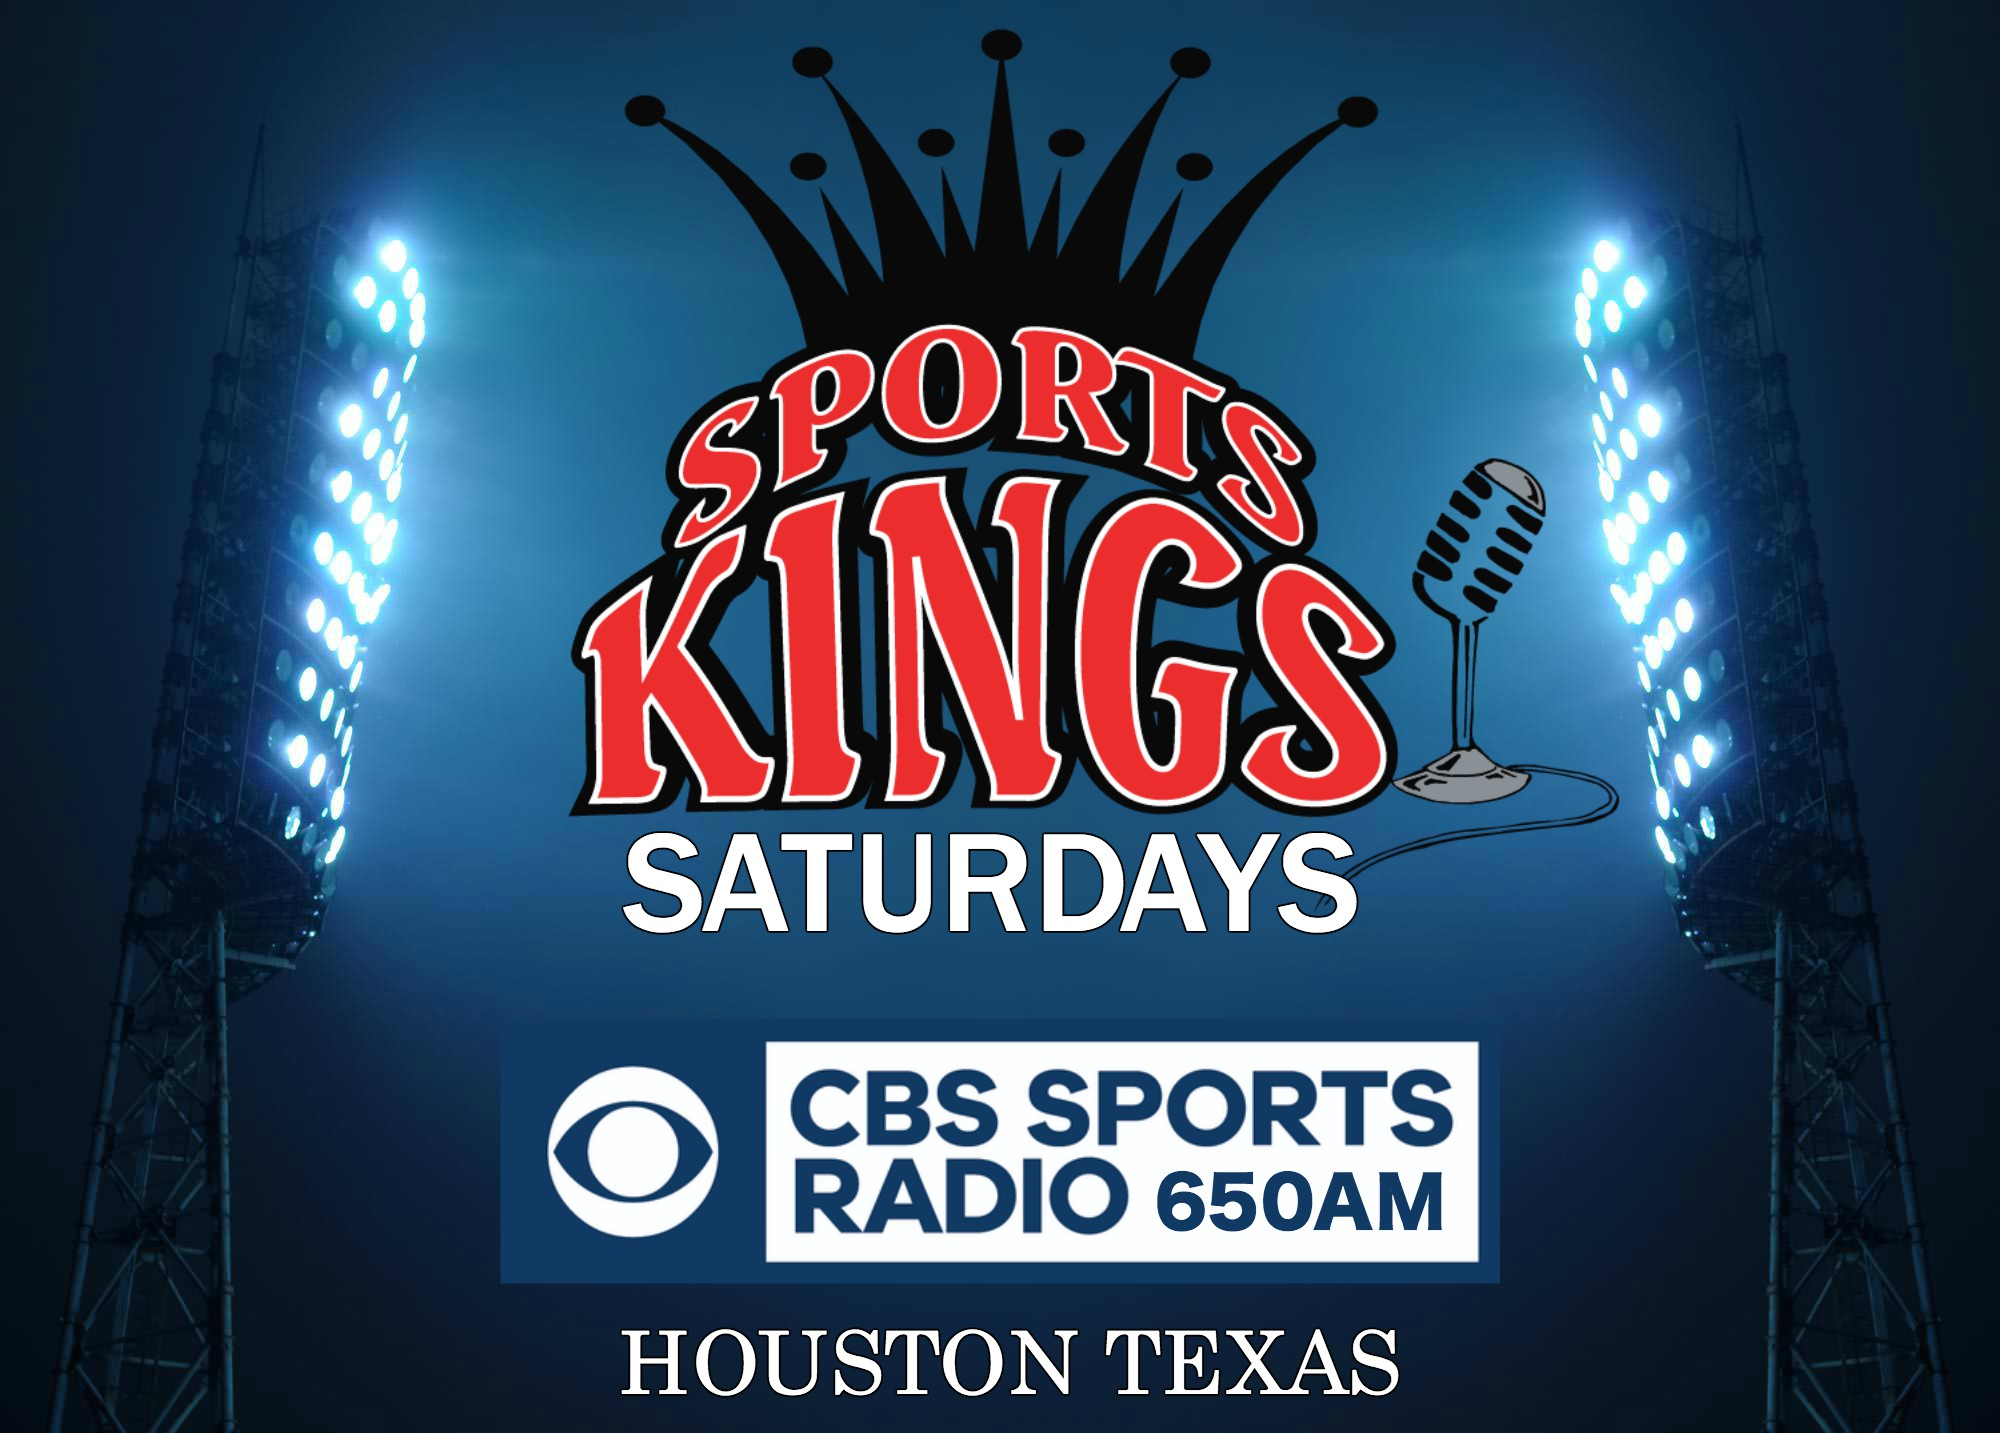 Sports Kings CBS Sports Radio 650AM